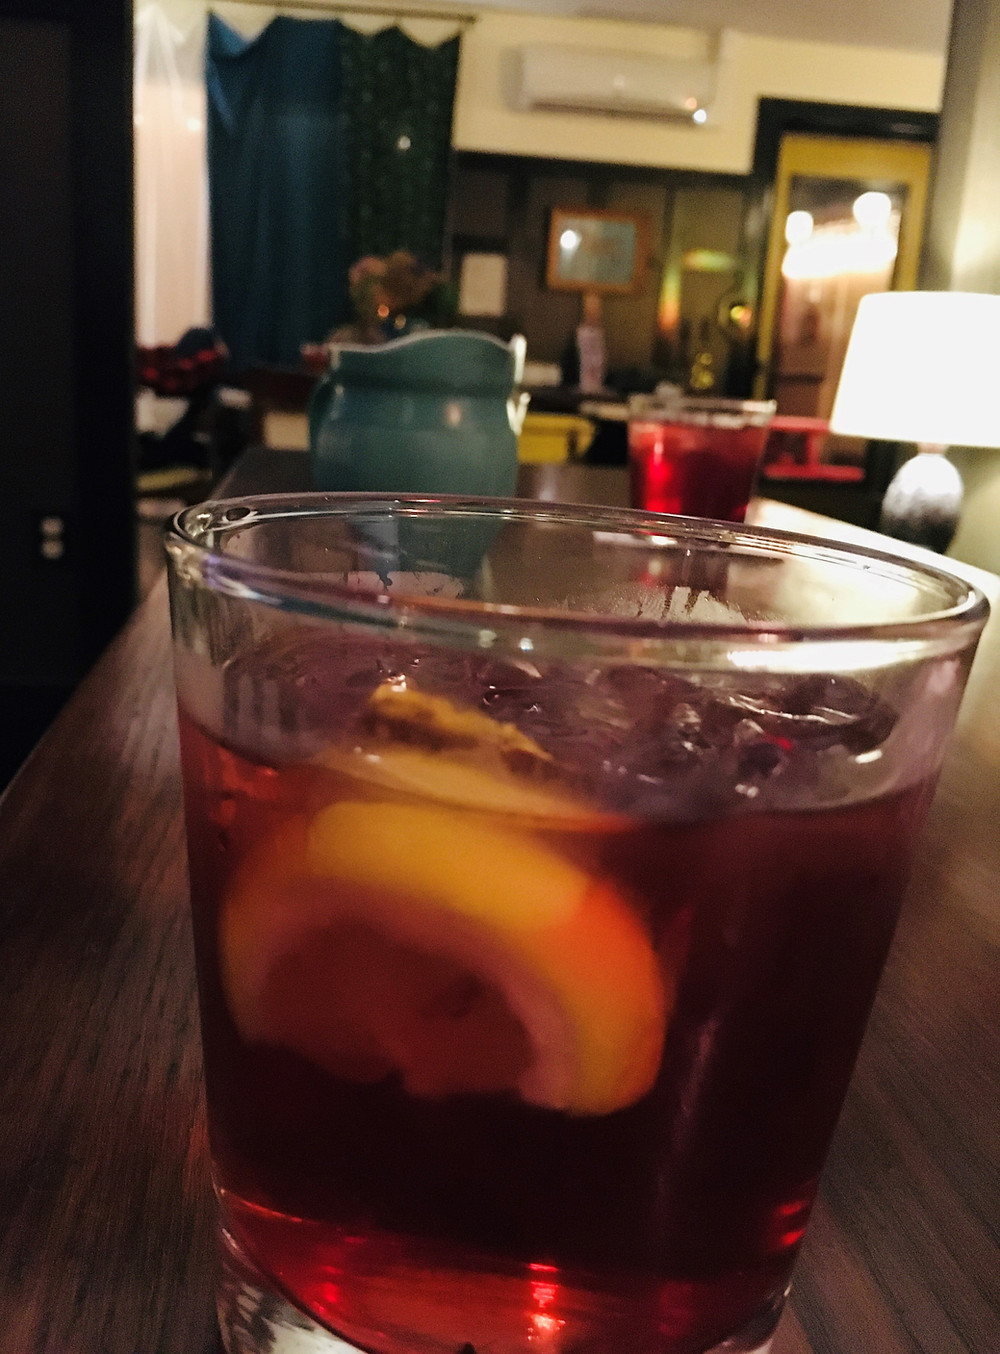 The Red Needle, a classic cocktail